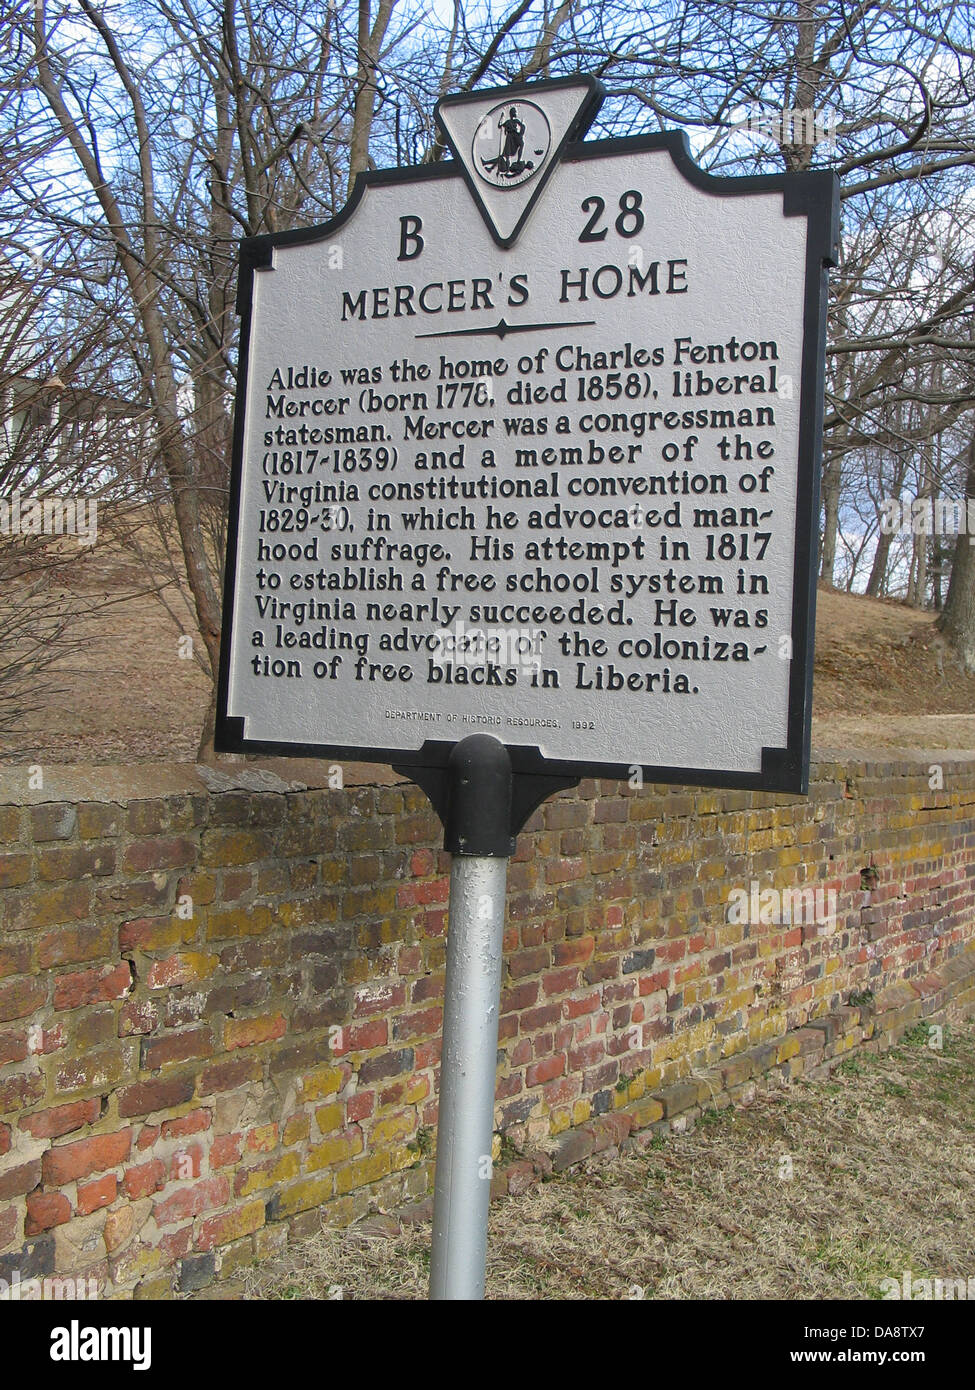 MERCER'S HOME Aldie was the home of Charles Fenton Mercer (born 1778, died 1858), liberal statesman. Mercer - Stock Image